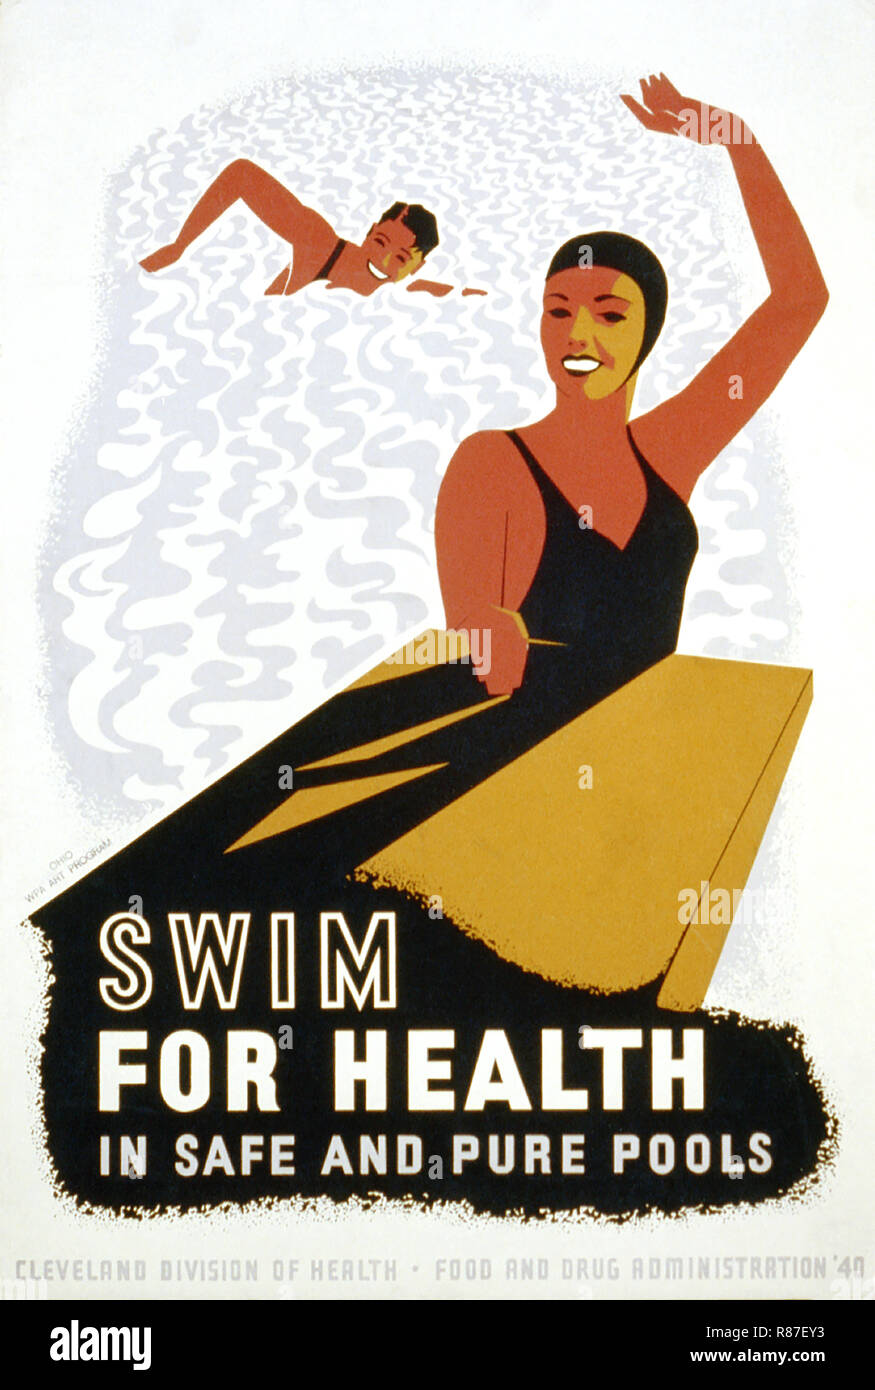 Work Projects Administration Poster Promoting Swimming as Healthy Exercise, 'Swim for Health in Safe and Pure Pools', Cleveland Division of Health, Food and Drug Administration, 1940 - Stock Image